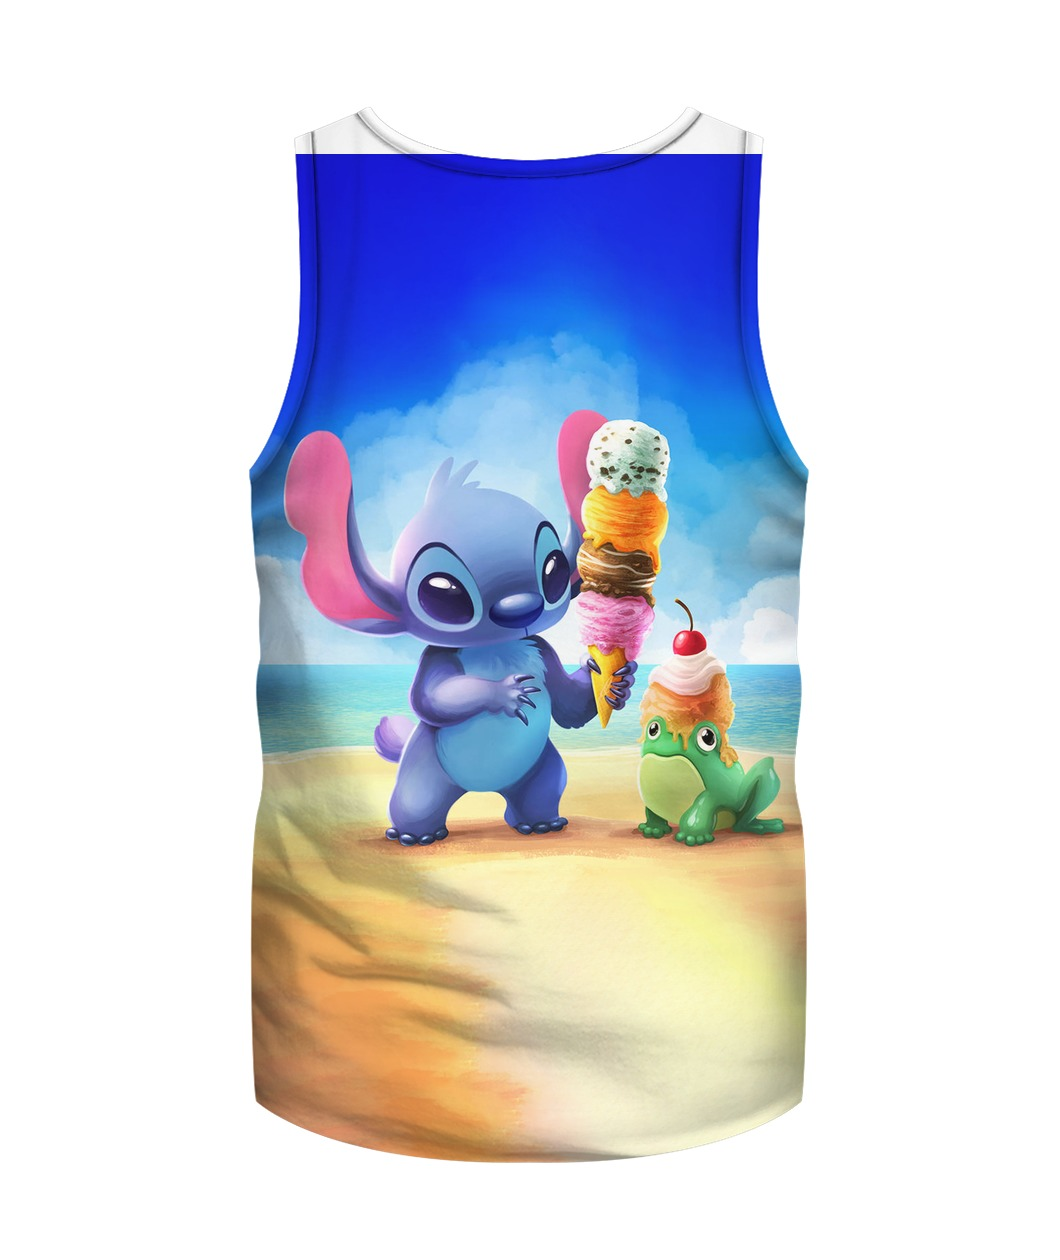 Stitch and ice-cream all over printed tank top - back